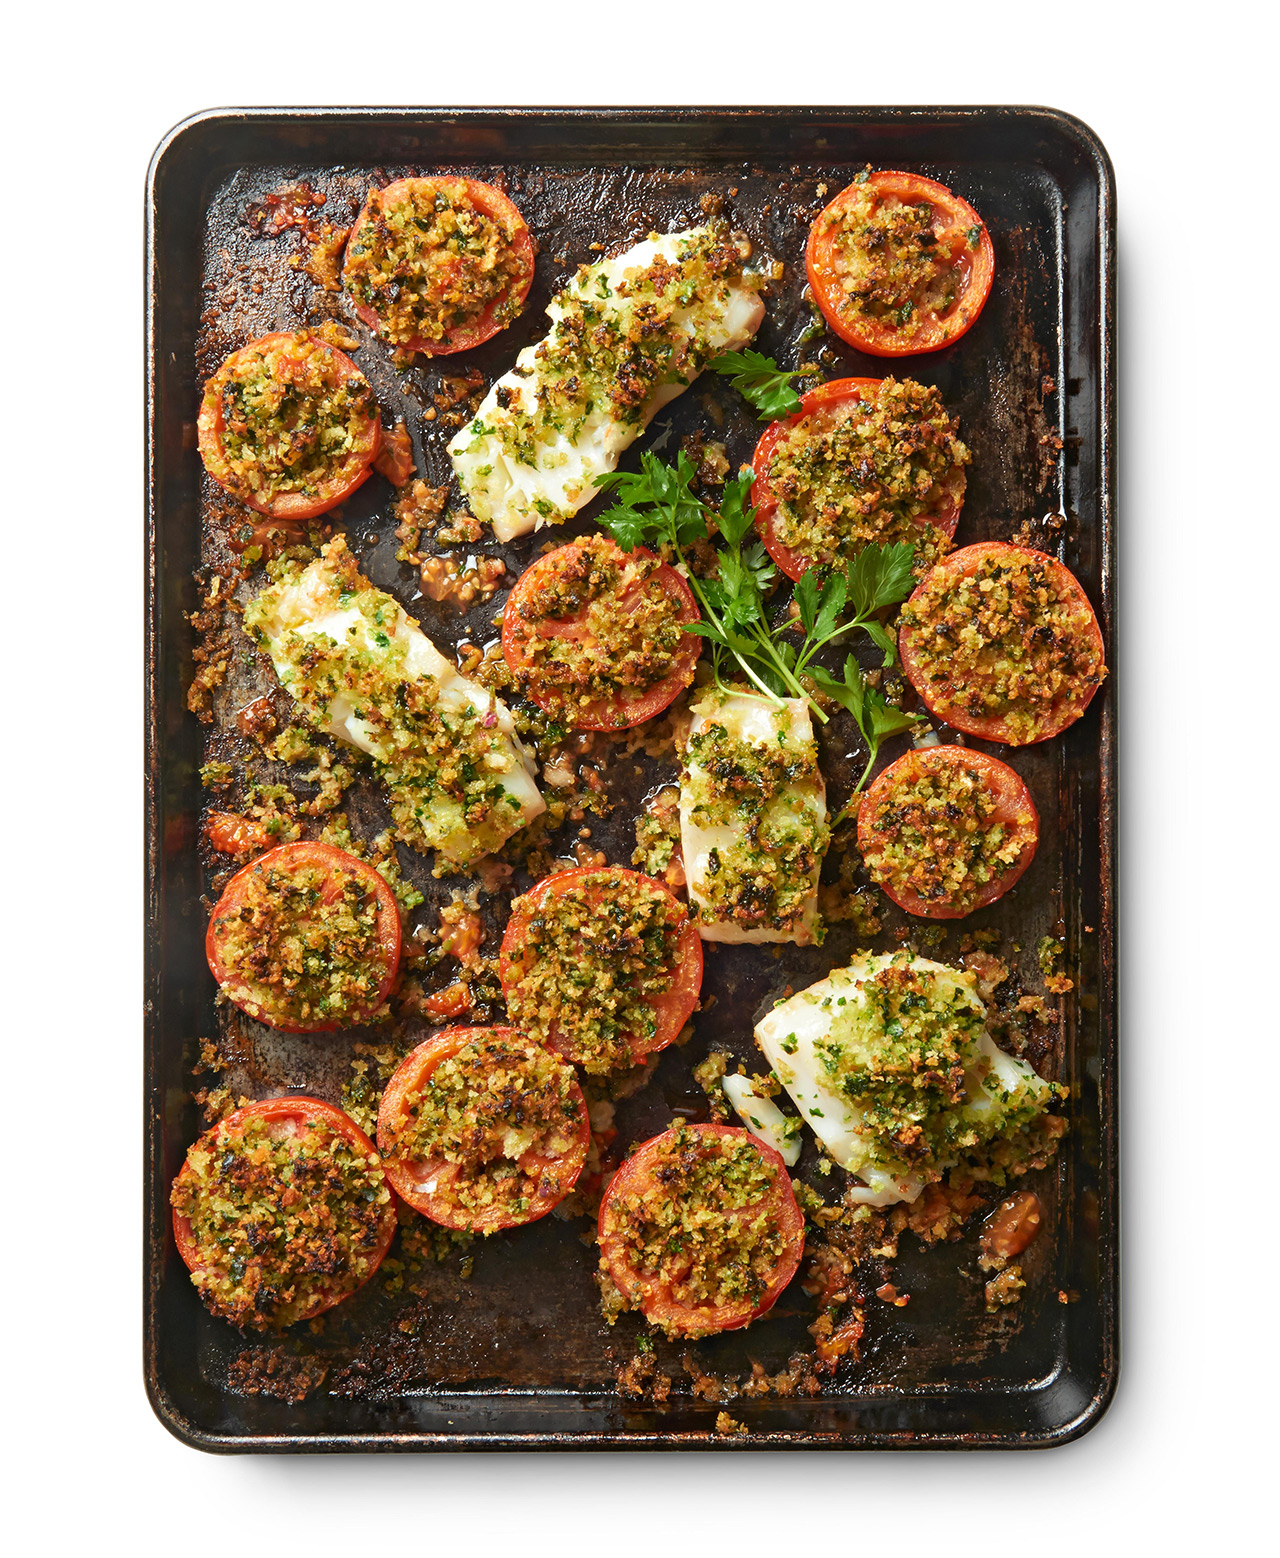 Cod and Tomatoes with Crispy Parsley Crumbs